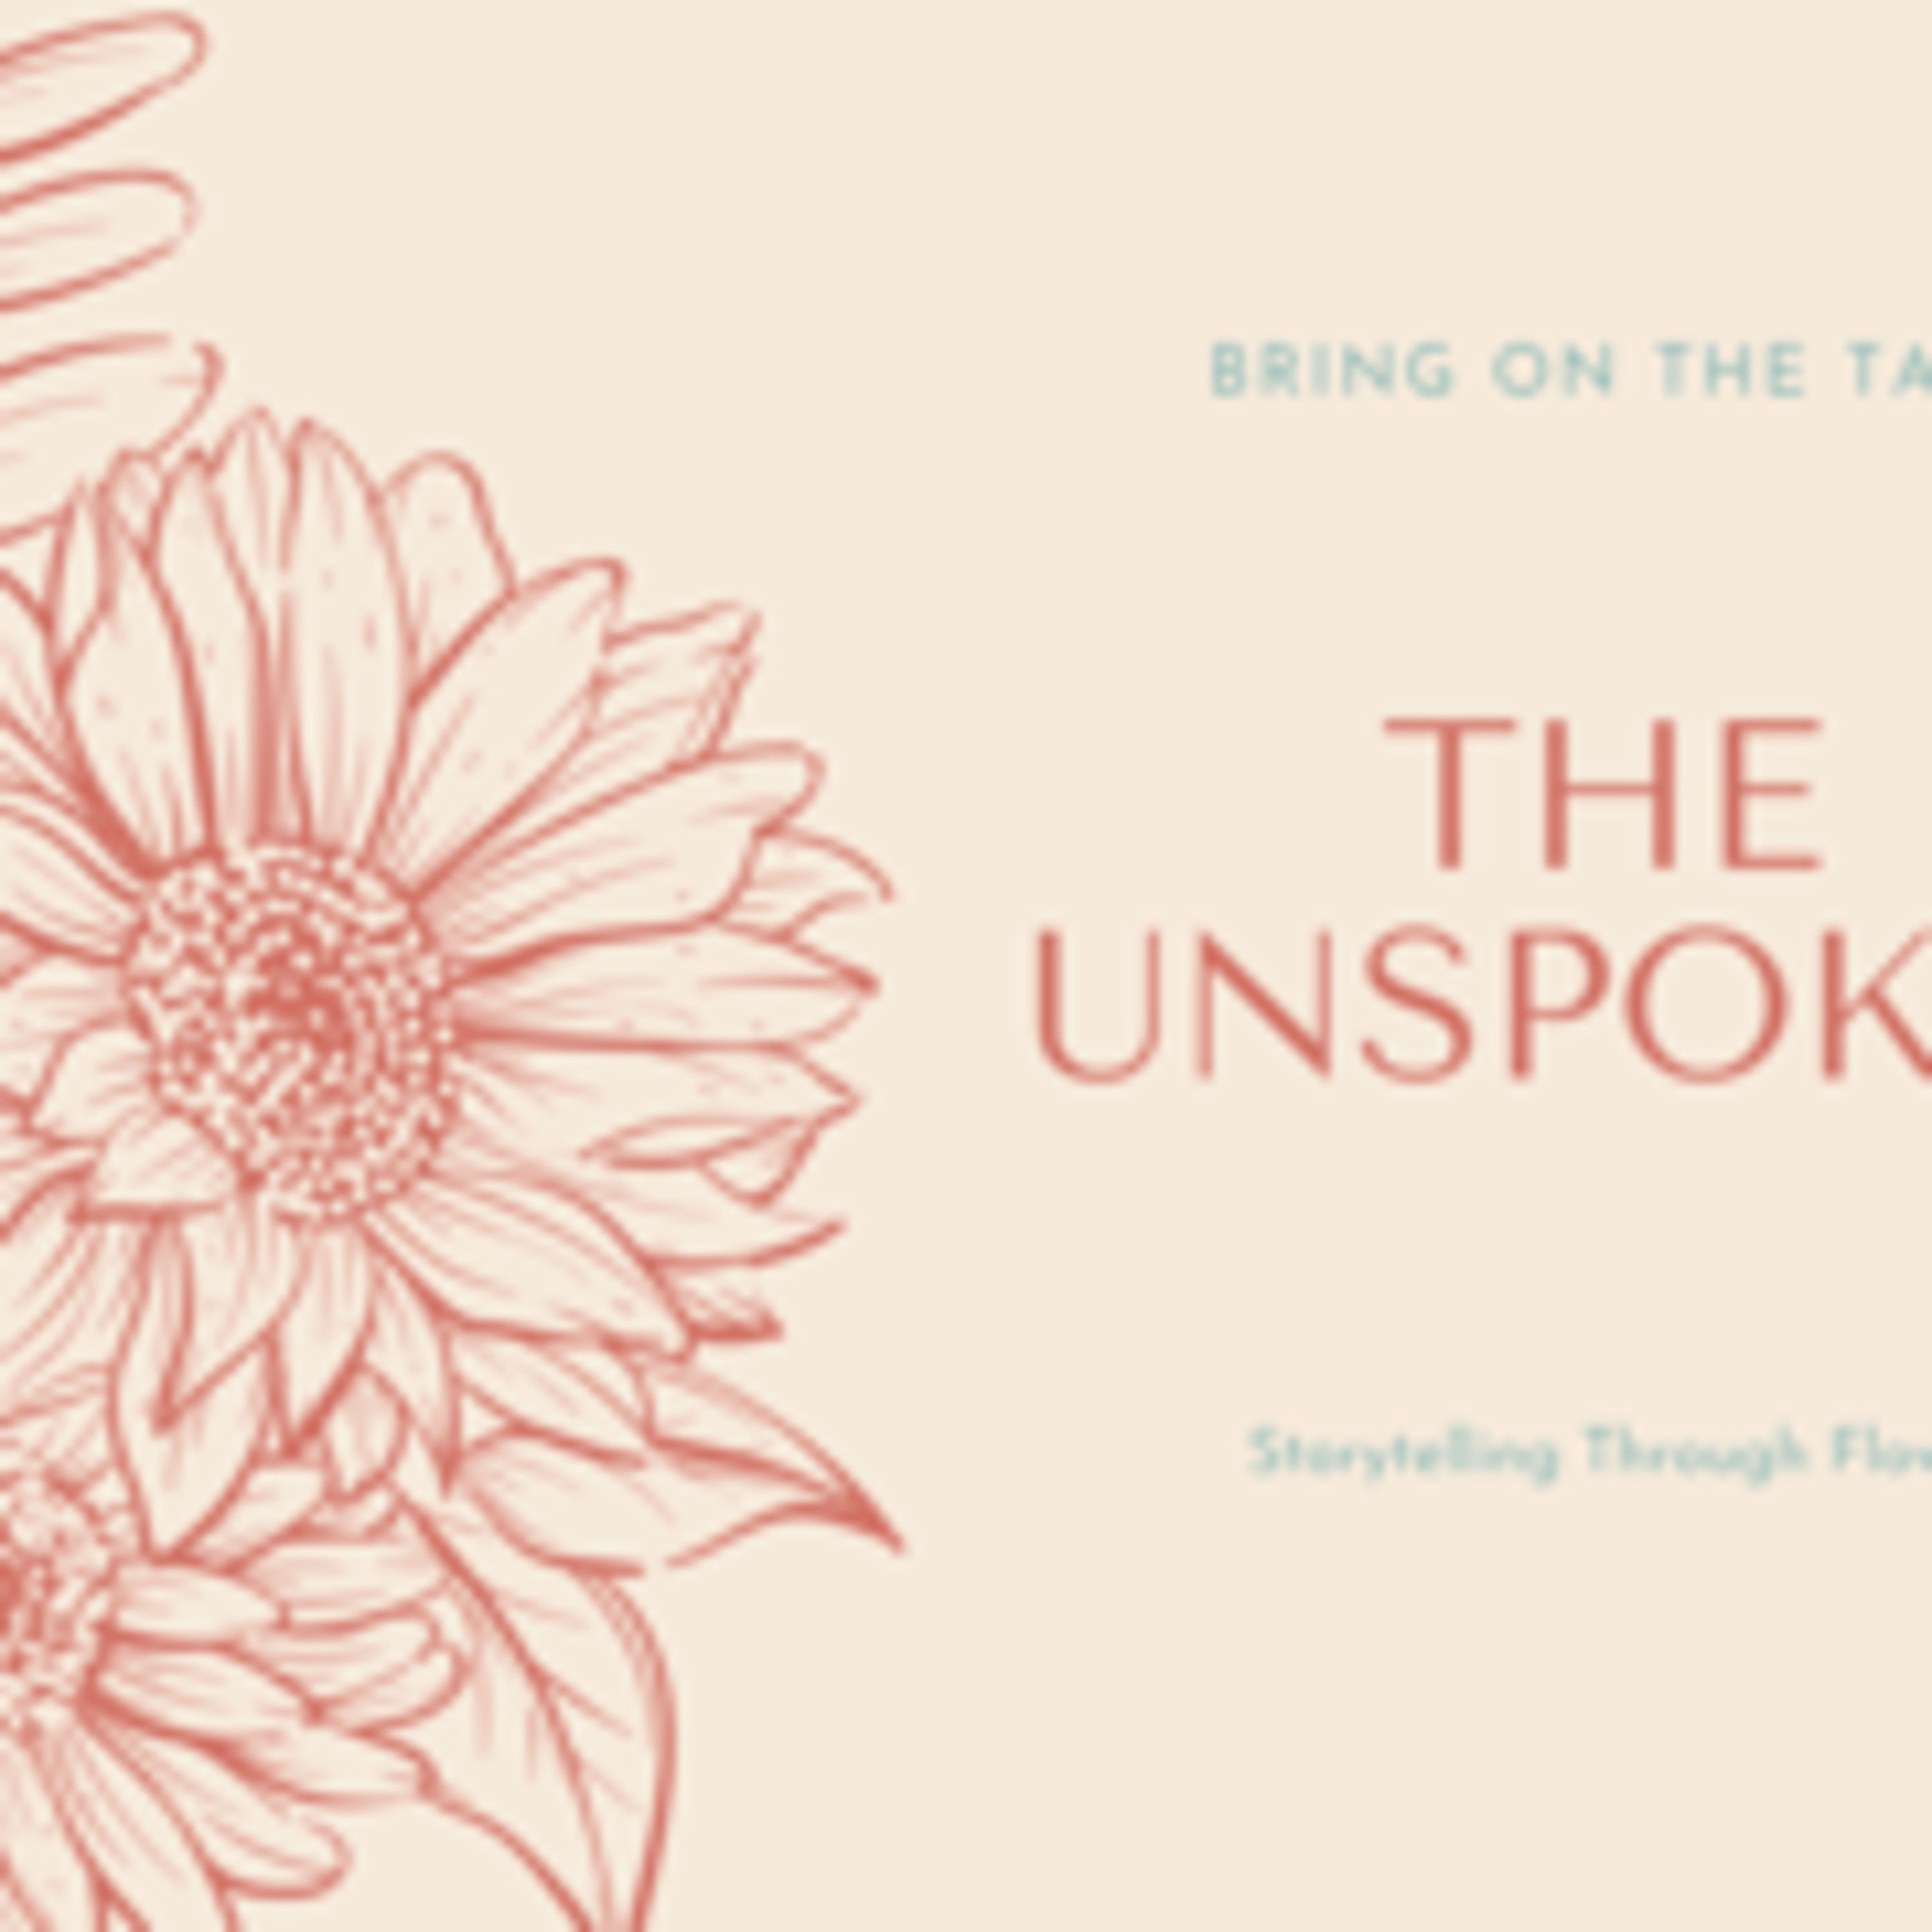 The unspoken series; money